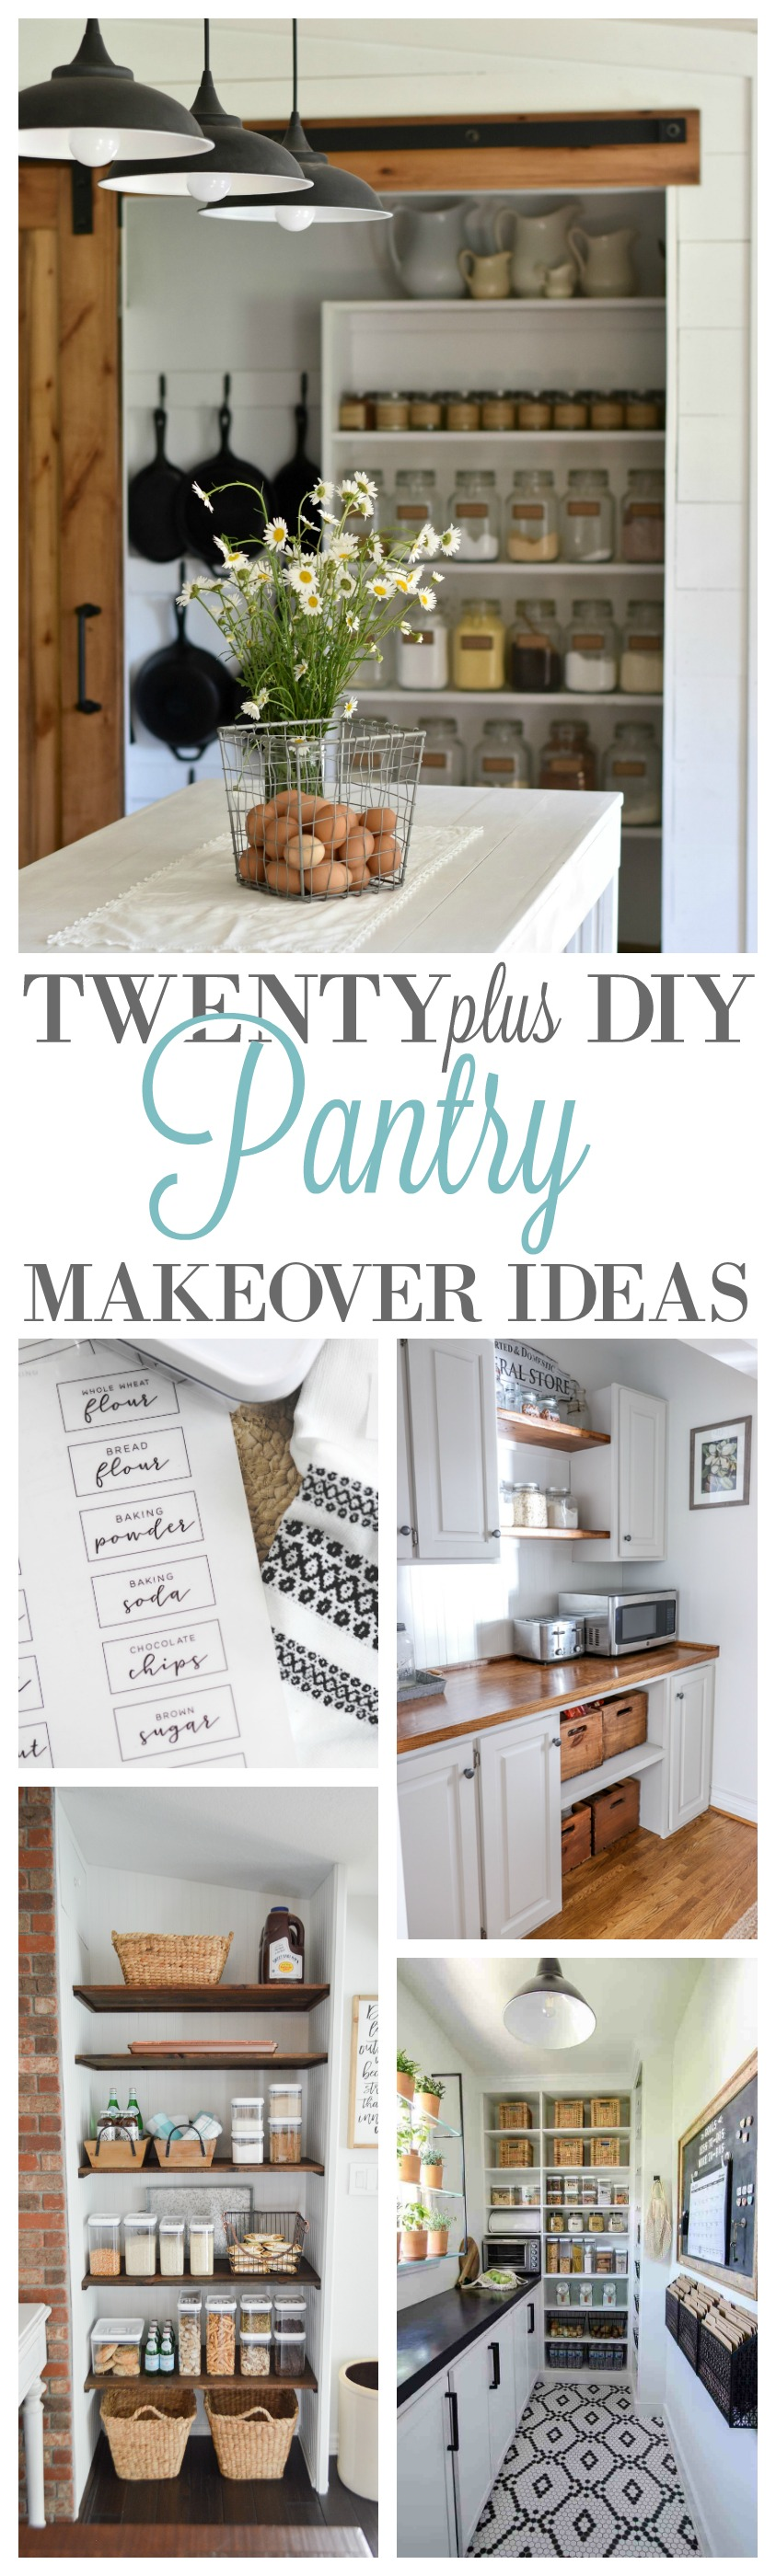 20 Diy Pantry Makeovers With Organizing Tips And Storage Ideas Fox Hollow Cottage